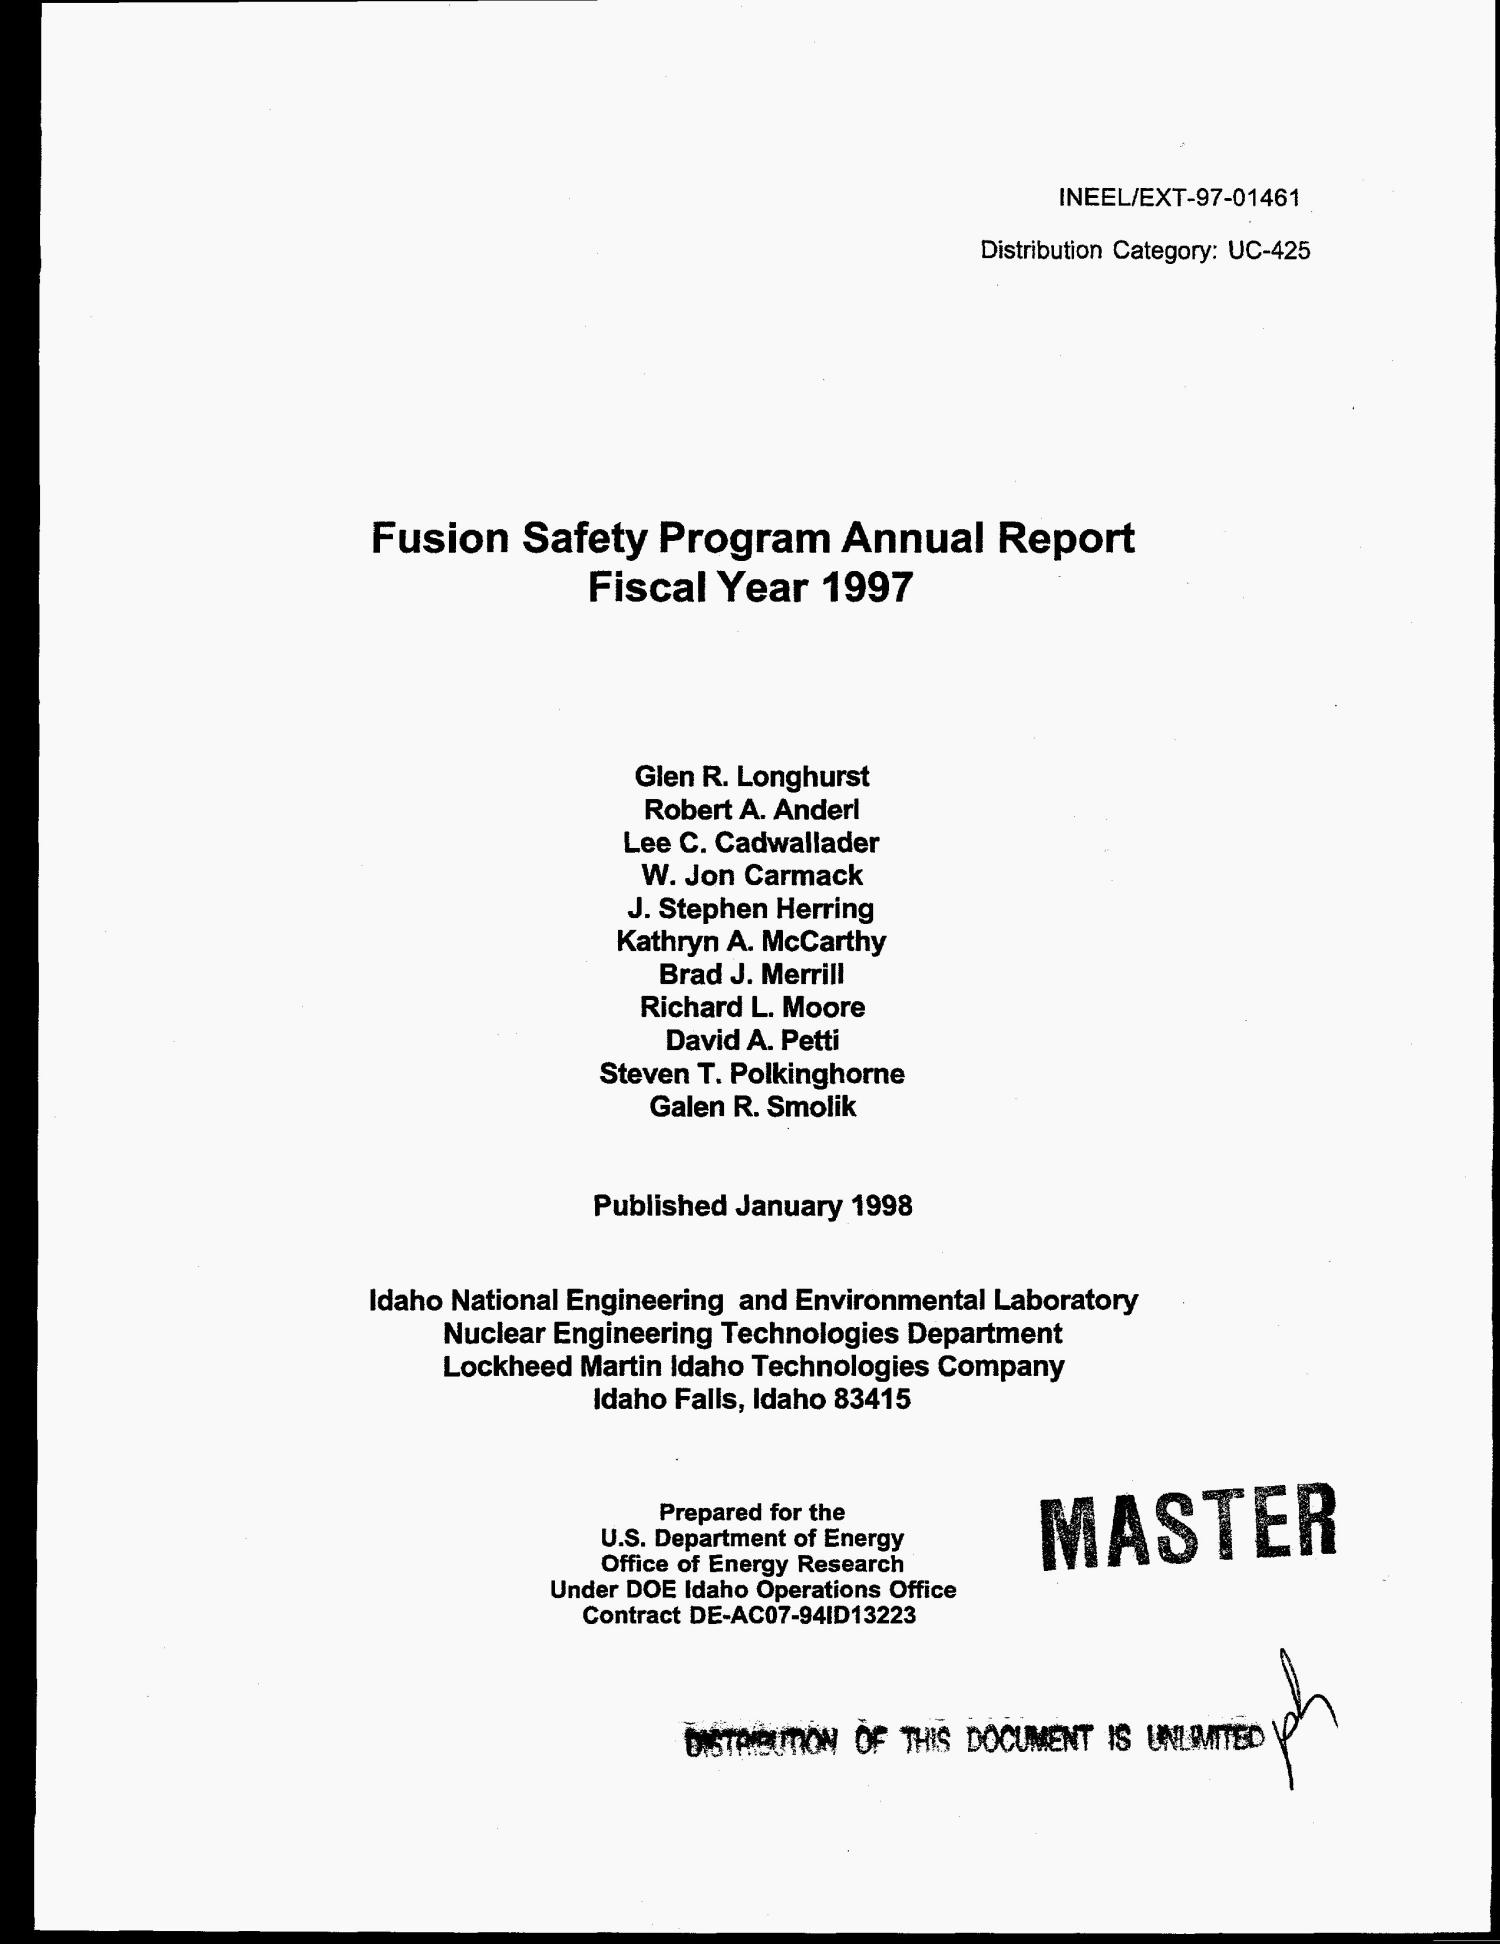 Fusion safety program annual report fiscal year 1997                                                                                                      [Sequence #]: 3 of 70